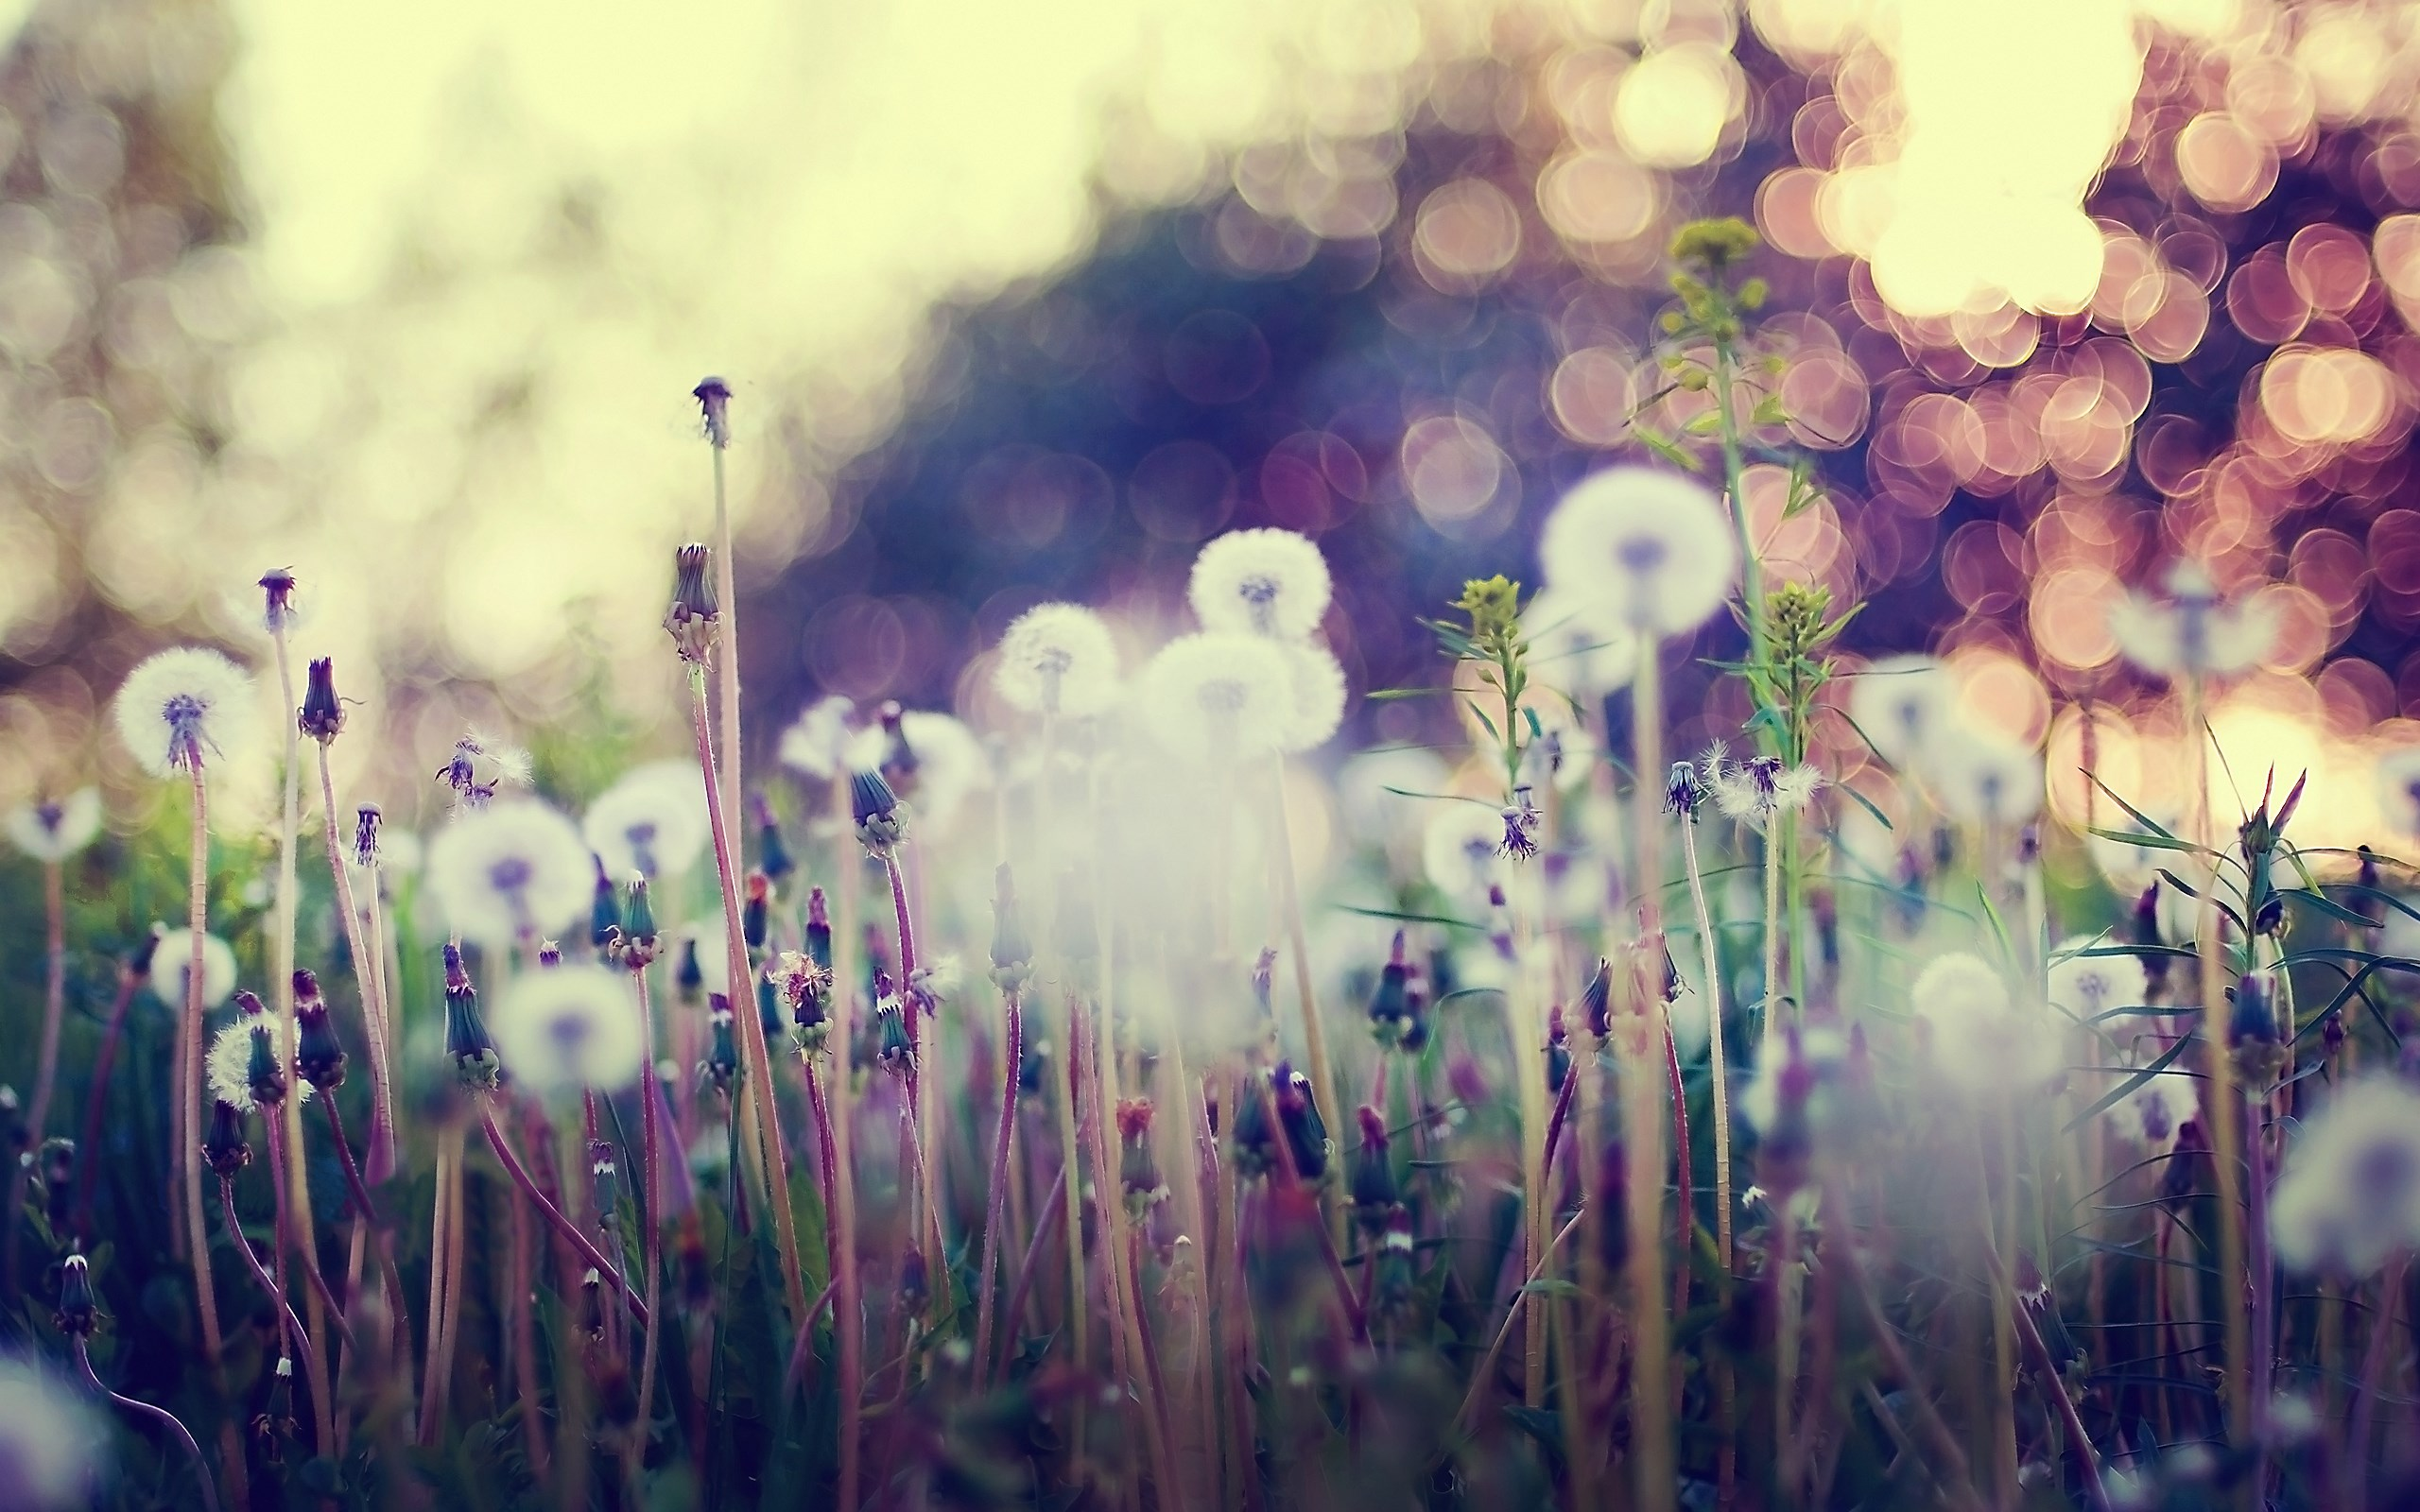 dandelions bokeh lights plant grass photo nature hd wallpaper 2560x1600